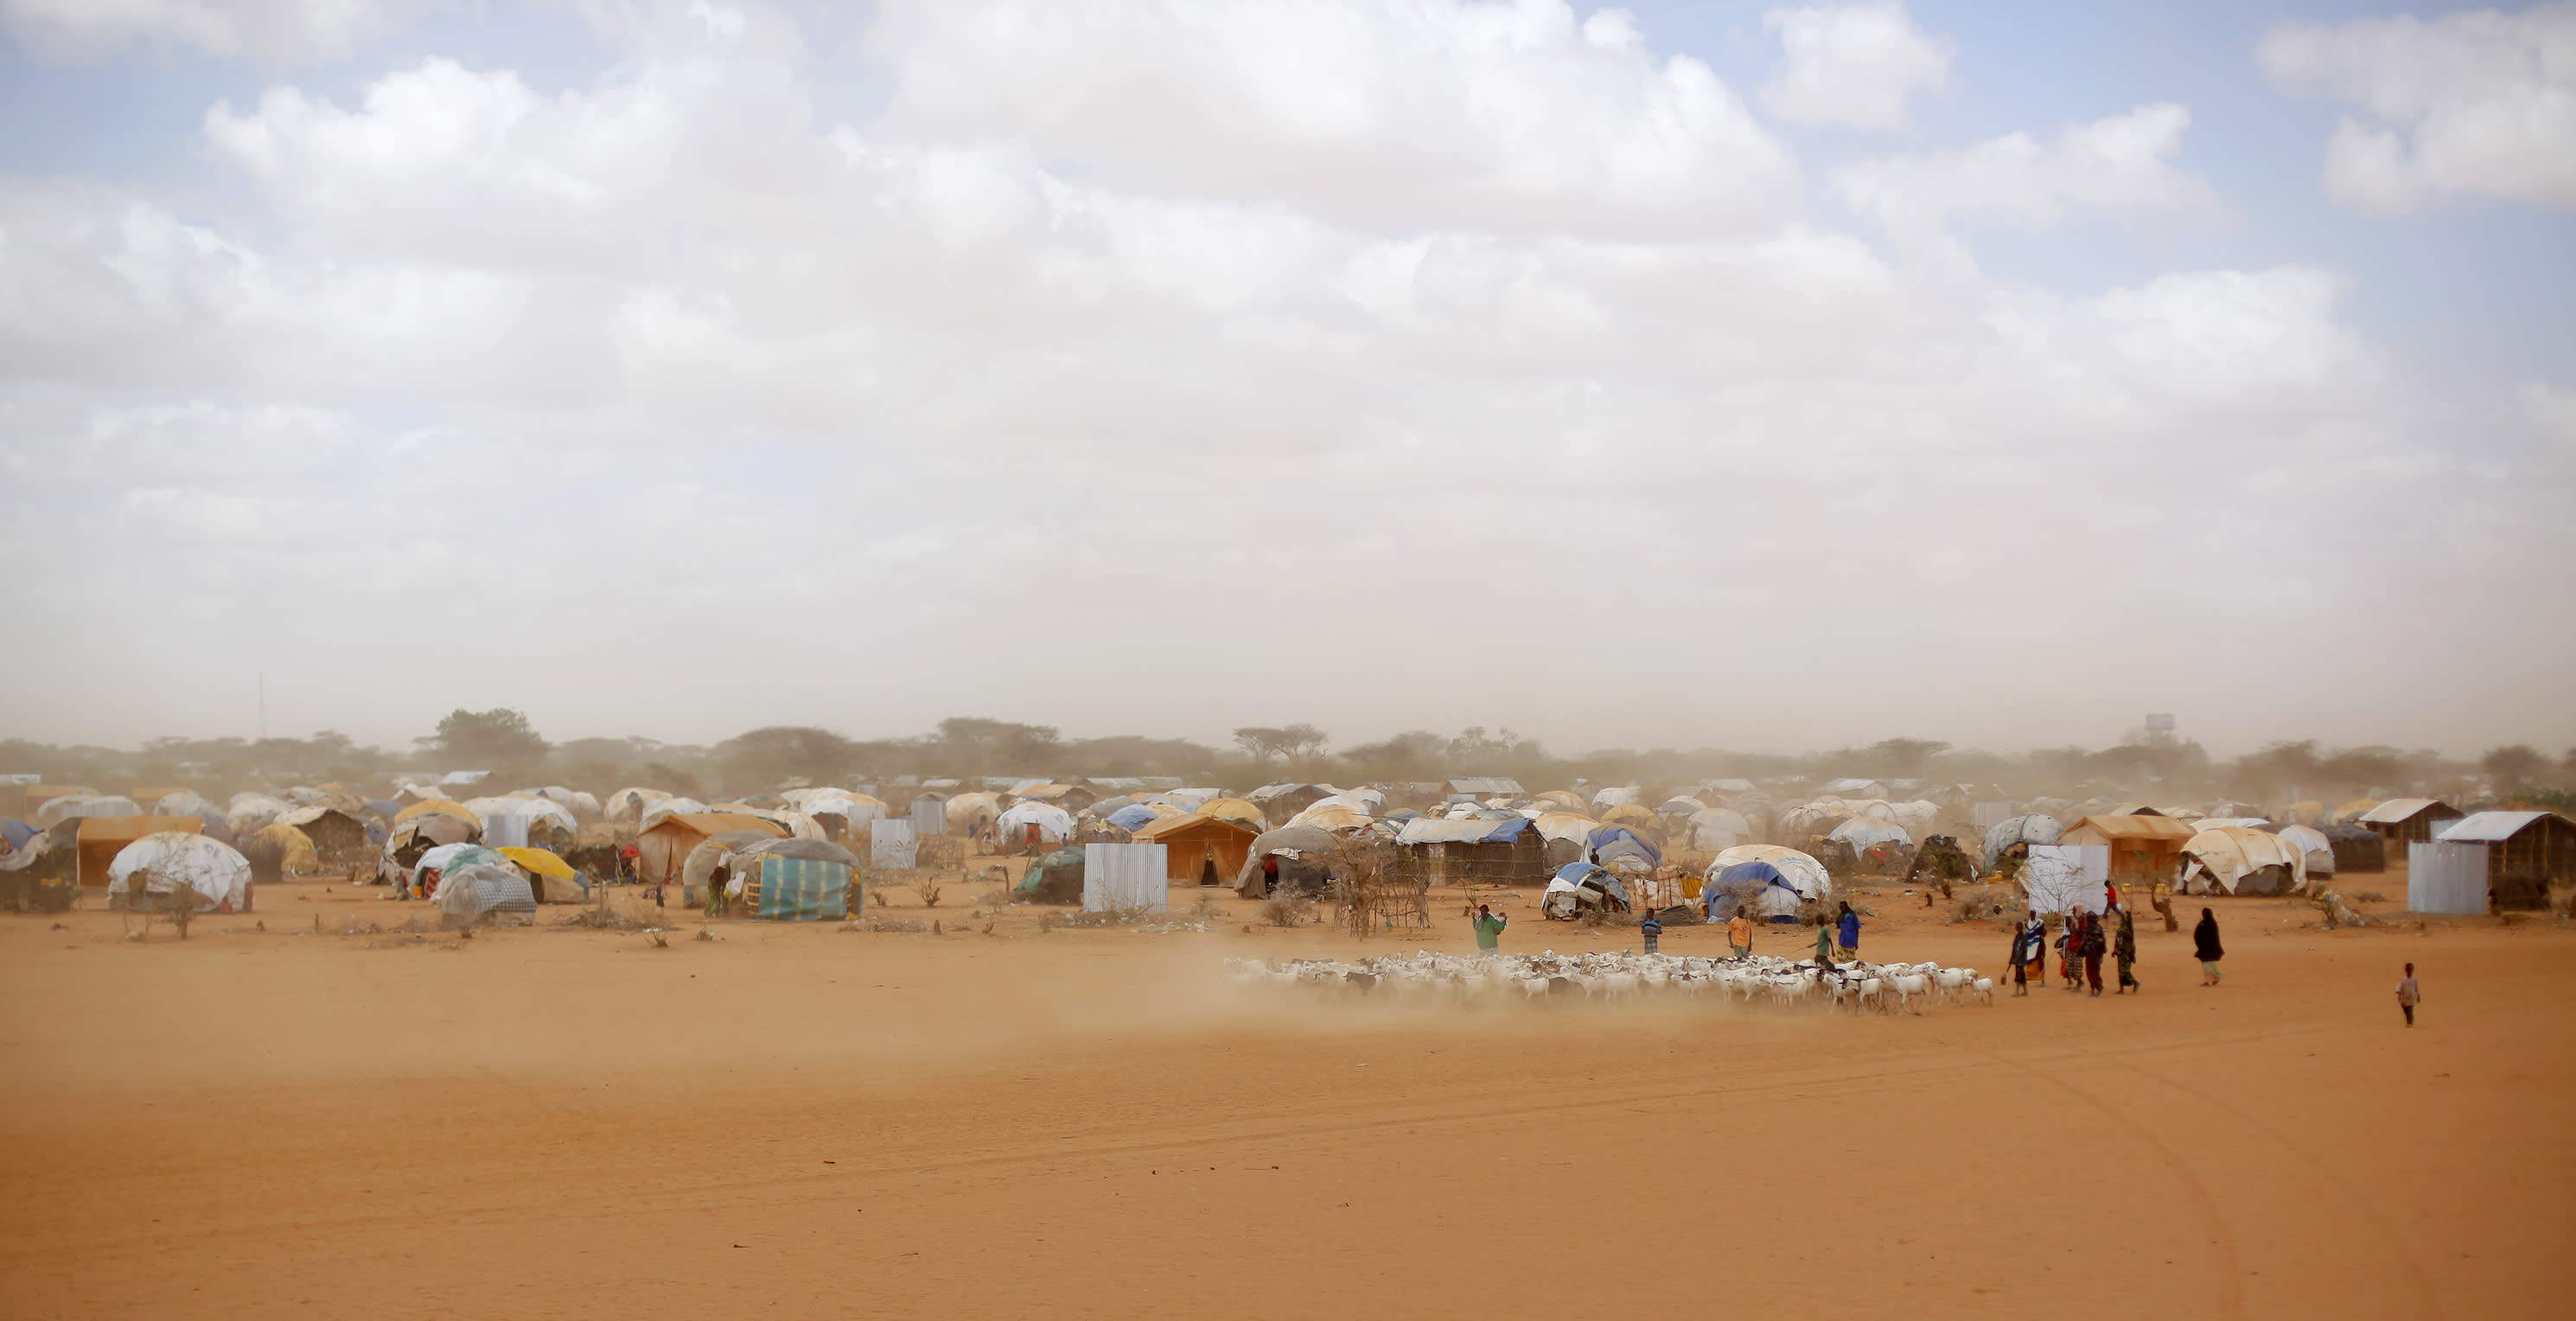 FILE - In this Aug. 7, 2011 file photo, Somali refugees herd their goats at the Ifo refugee camp outside Dadaab, eastern Kenya, 100 kilometers (62 miles) from the Somali border. Human-induced climate change contributed to low rain levels in East Africa in 2011, making global warming one of the causes of Somalia's famine and the tens of thousands of deaths that followed, a new study has found. (AP Photo/Jerome Delay, File)